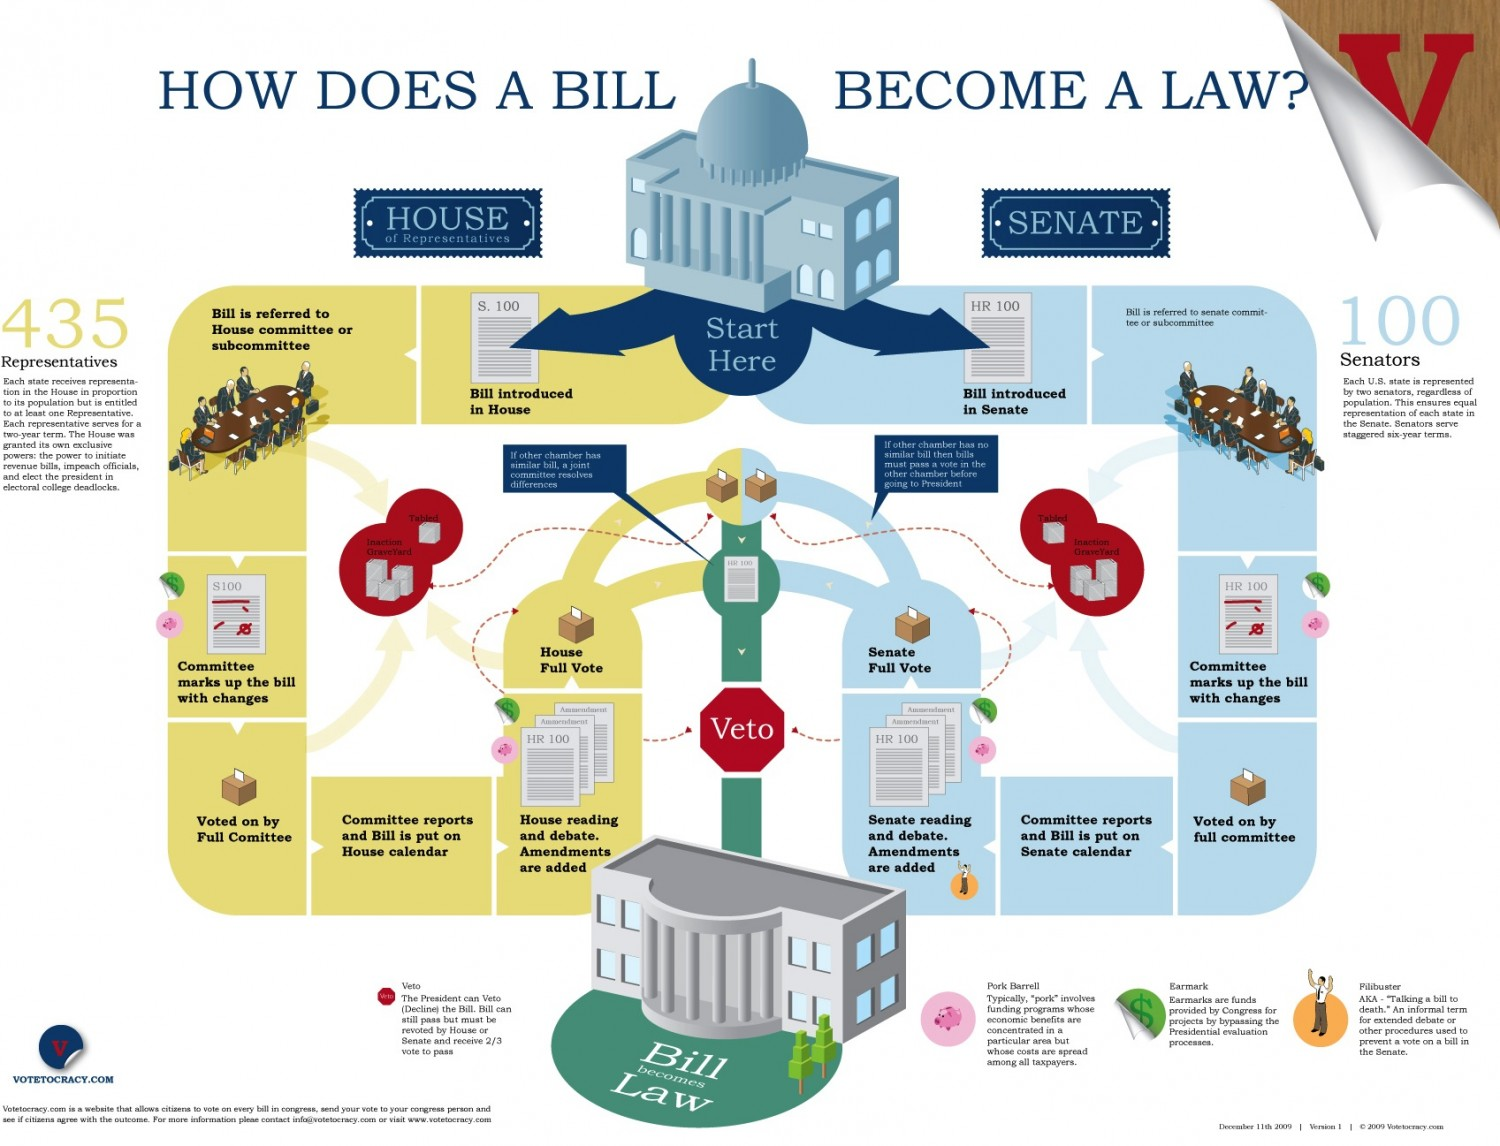 how-does-a-bill-become-a-law_50290b41c9938_w1500